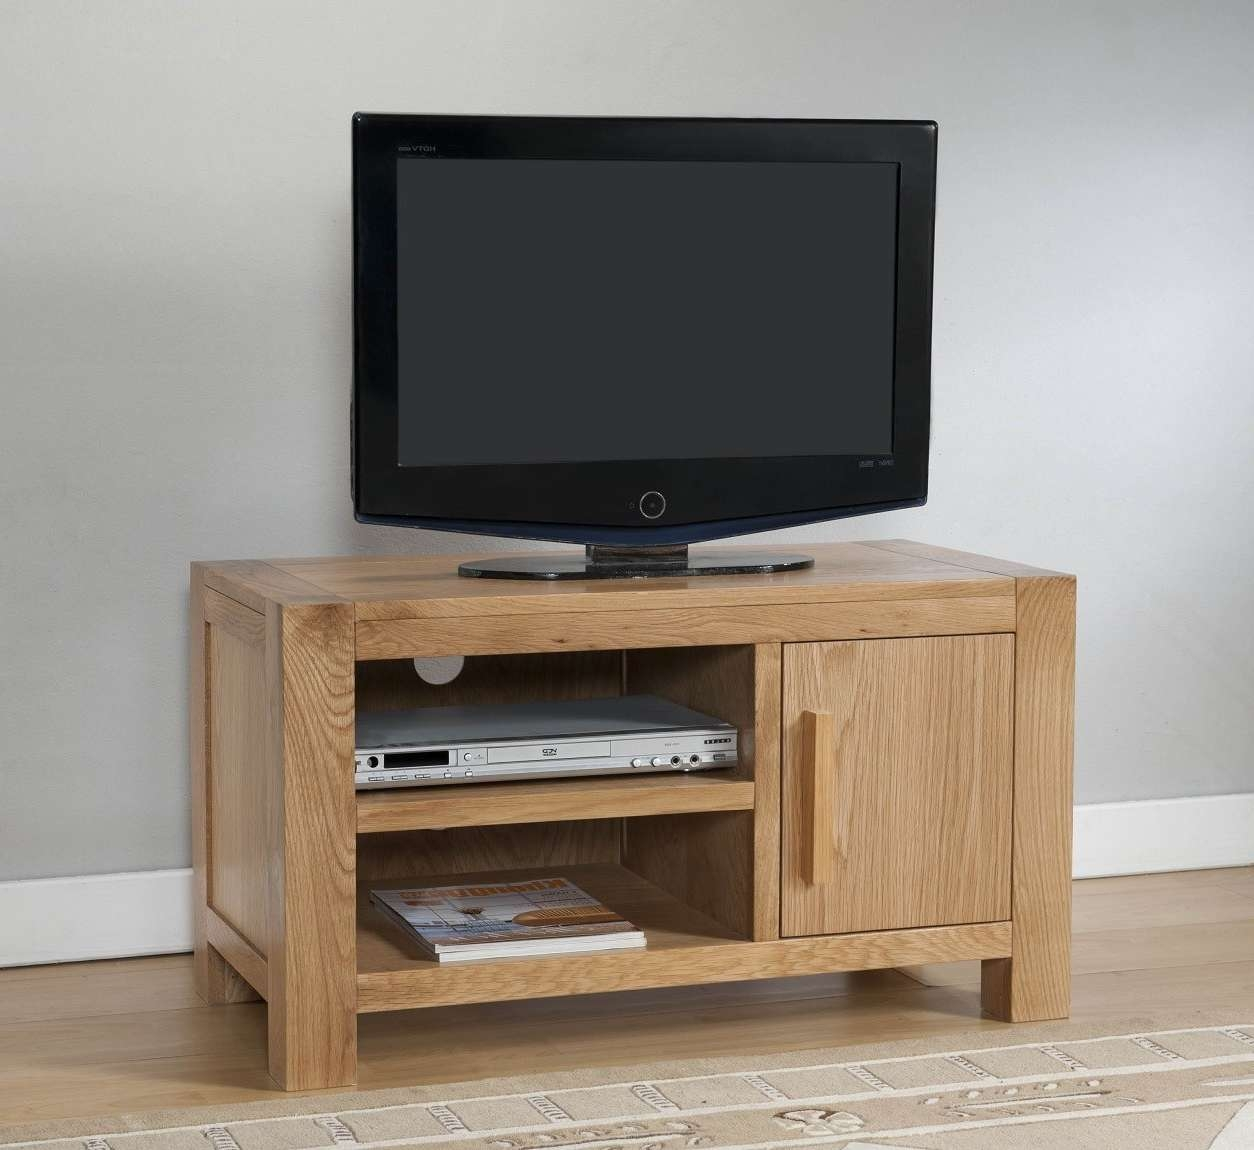 Aylesbury Contemporary Light Oak Small Tv Unit | Oak Furniture Uk Regarding Small Oak Tv Cabinets (View 1 of 20)